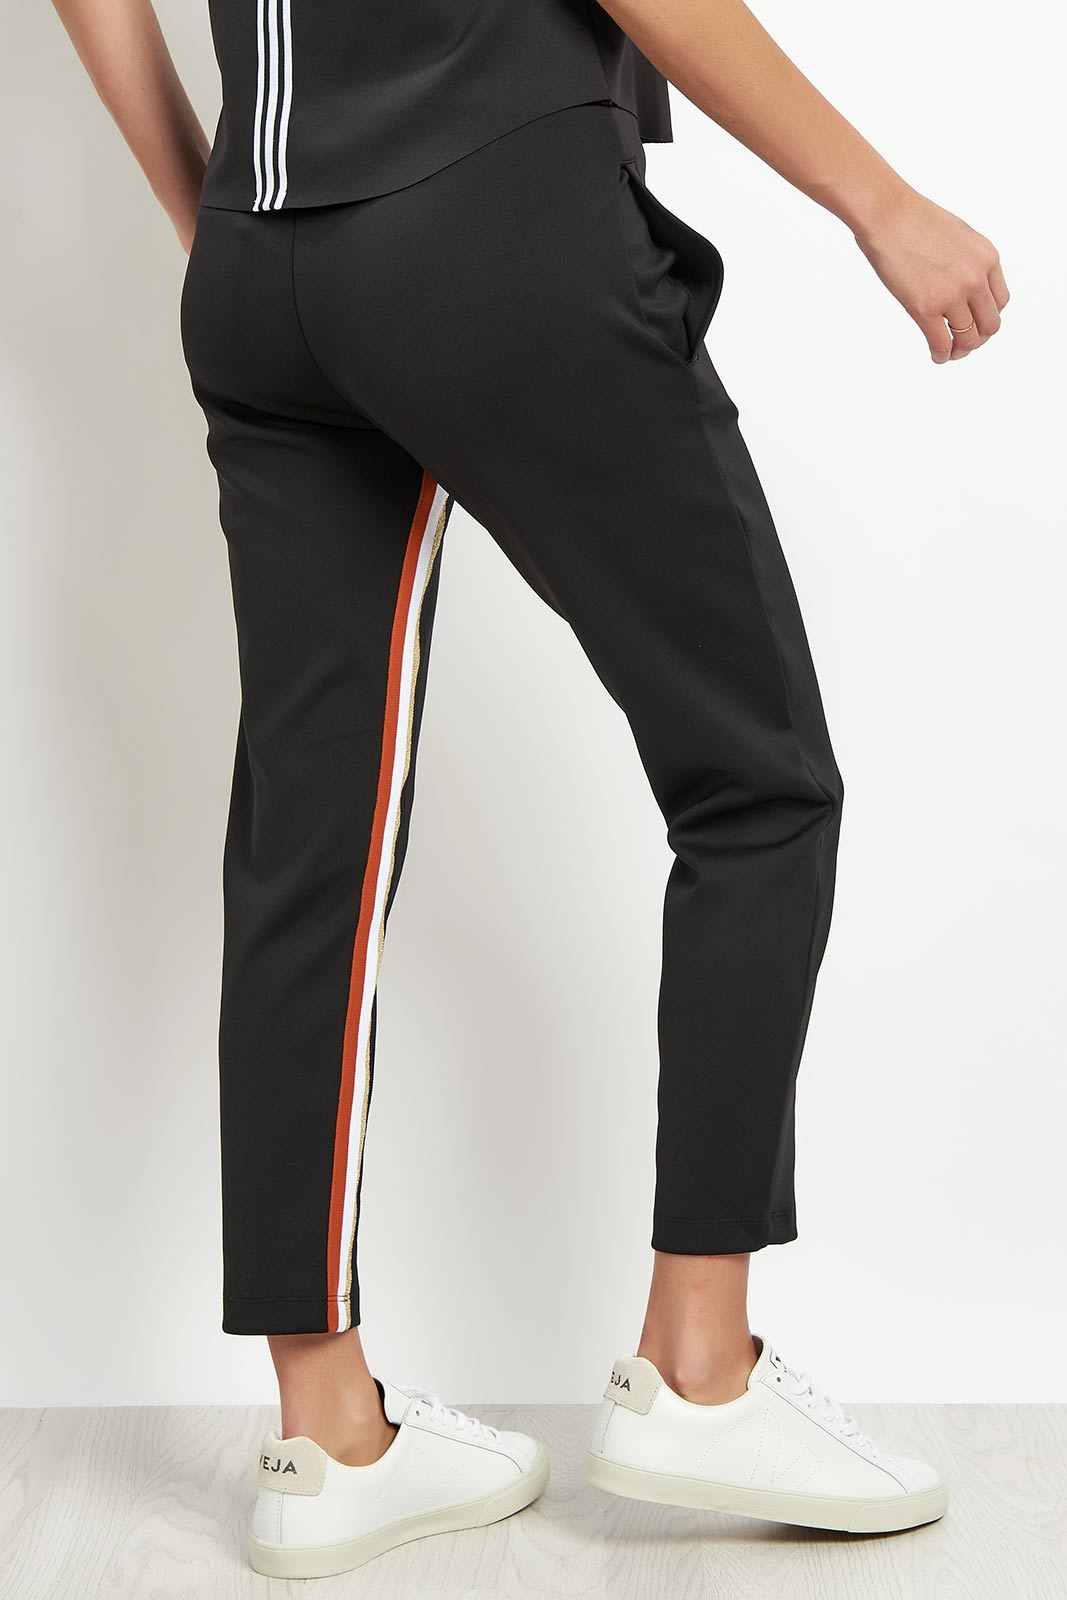 Koral Elizabeth Cropped Pant - Black/Gold image 2 - The Sports Edit